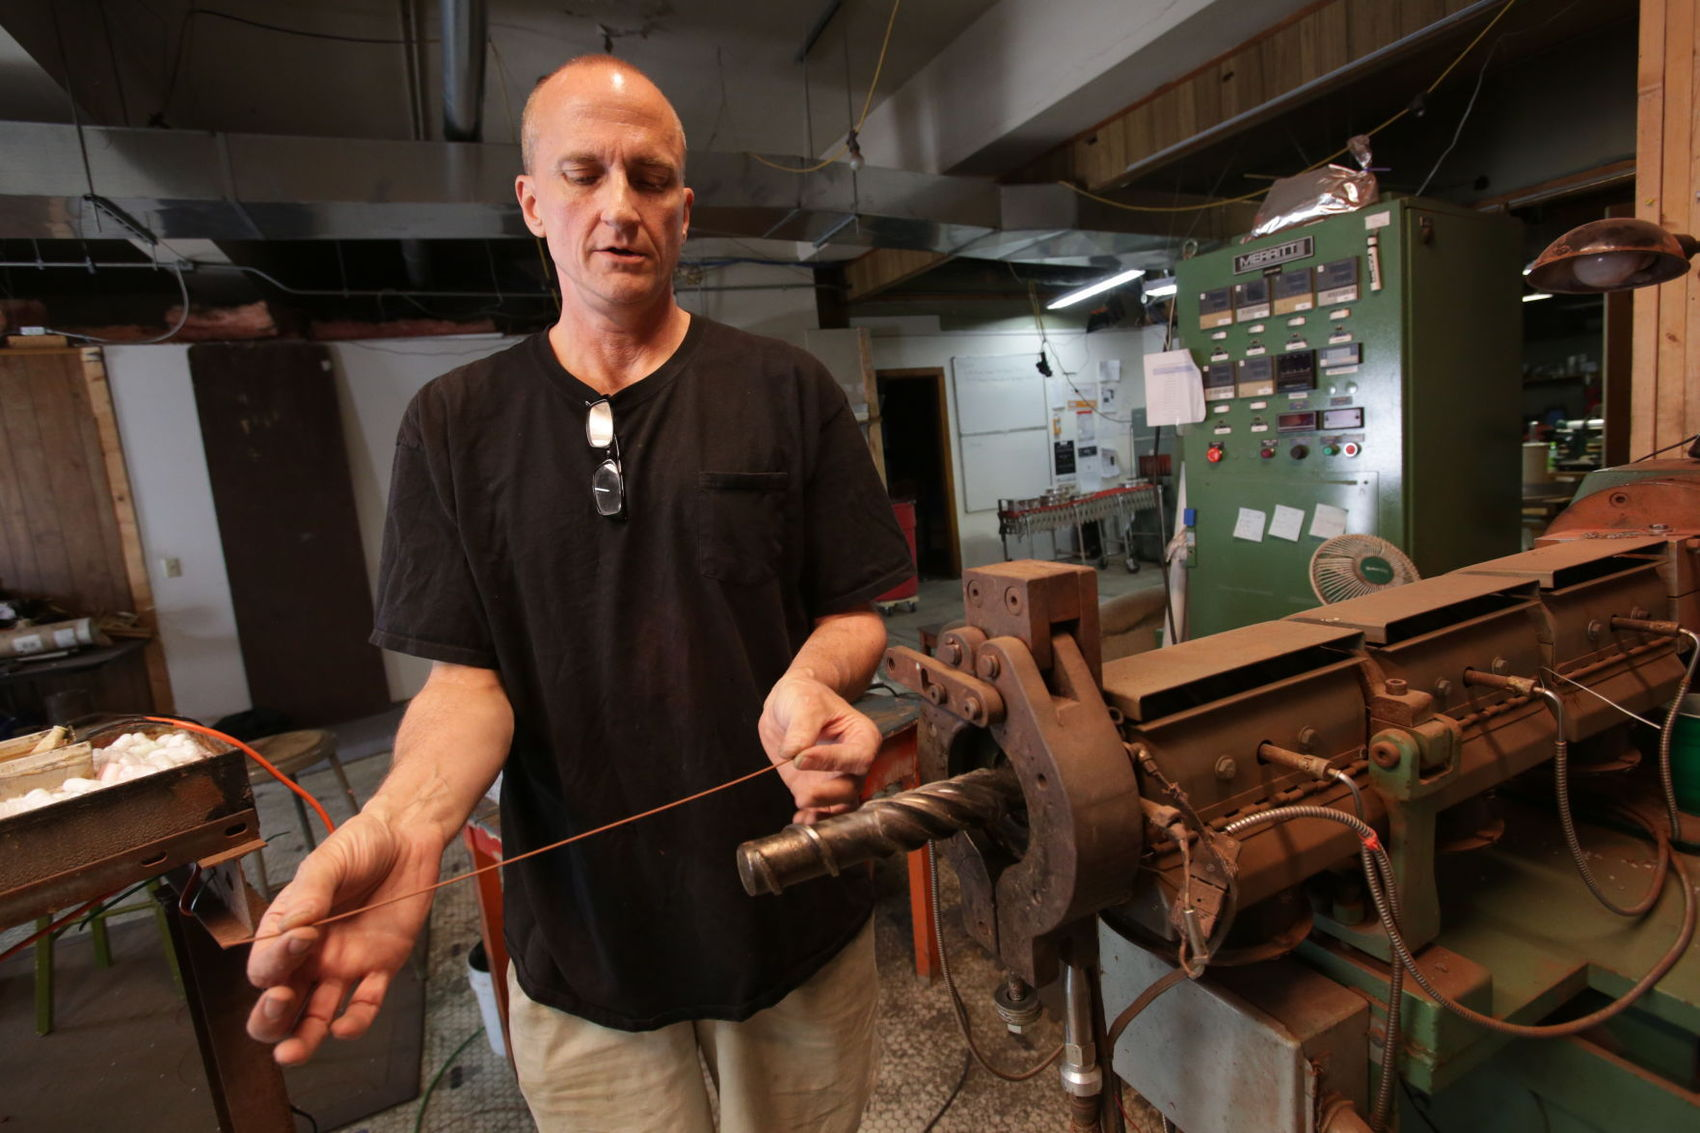 The Wisconsin State Journal - August 20, 2017 - Wisconsin State Journal: A Stoughton entrepreneur has found a way to print metal without a million dollar 3D printer.